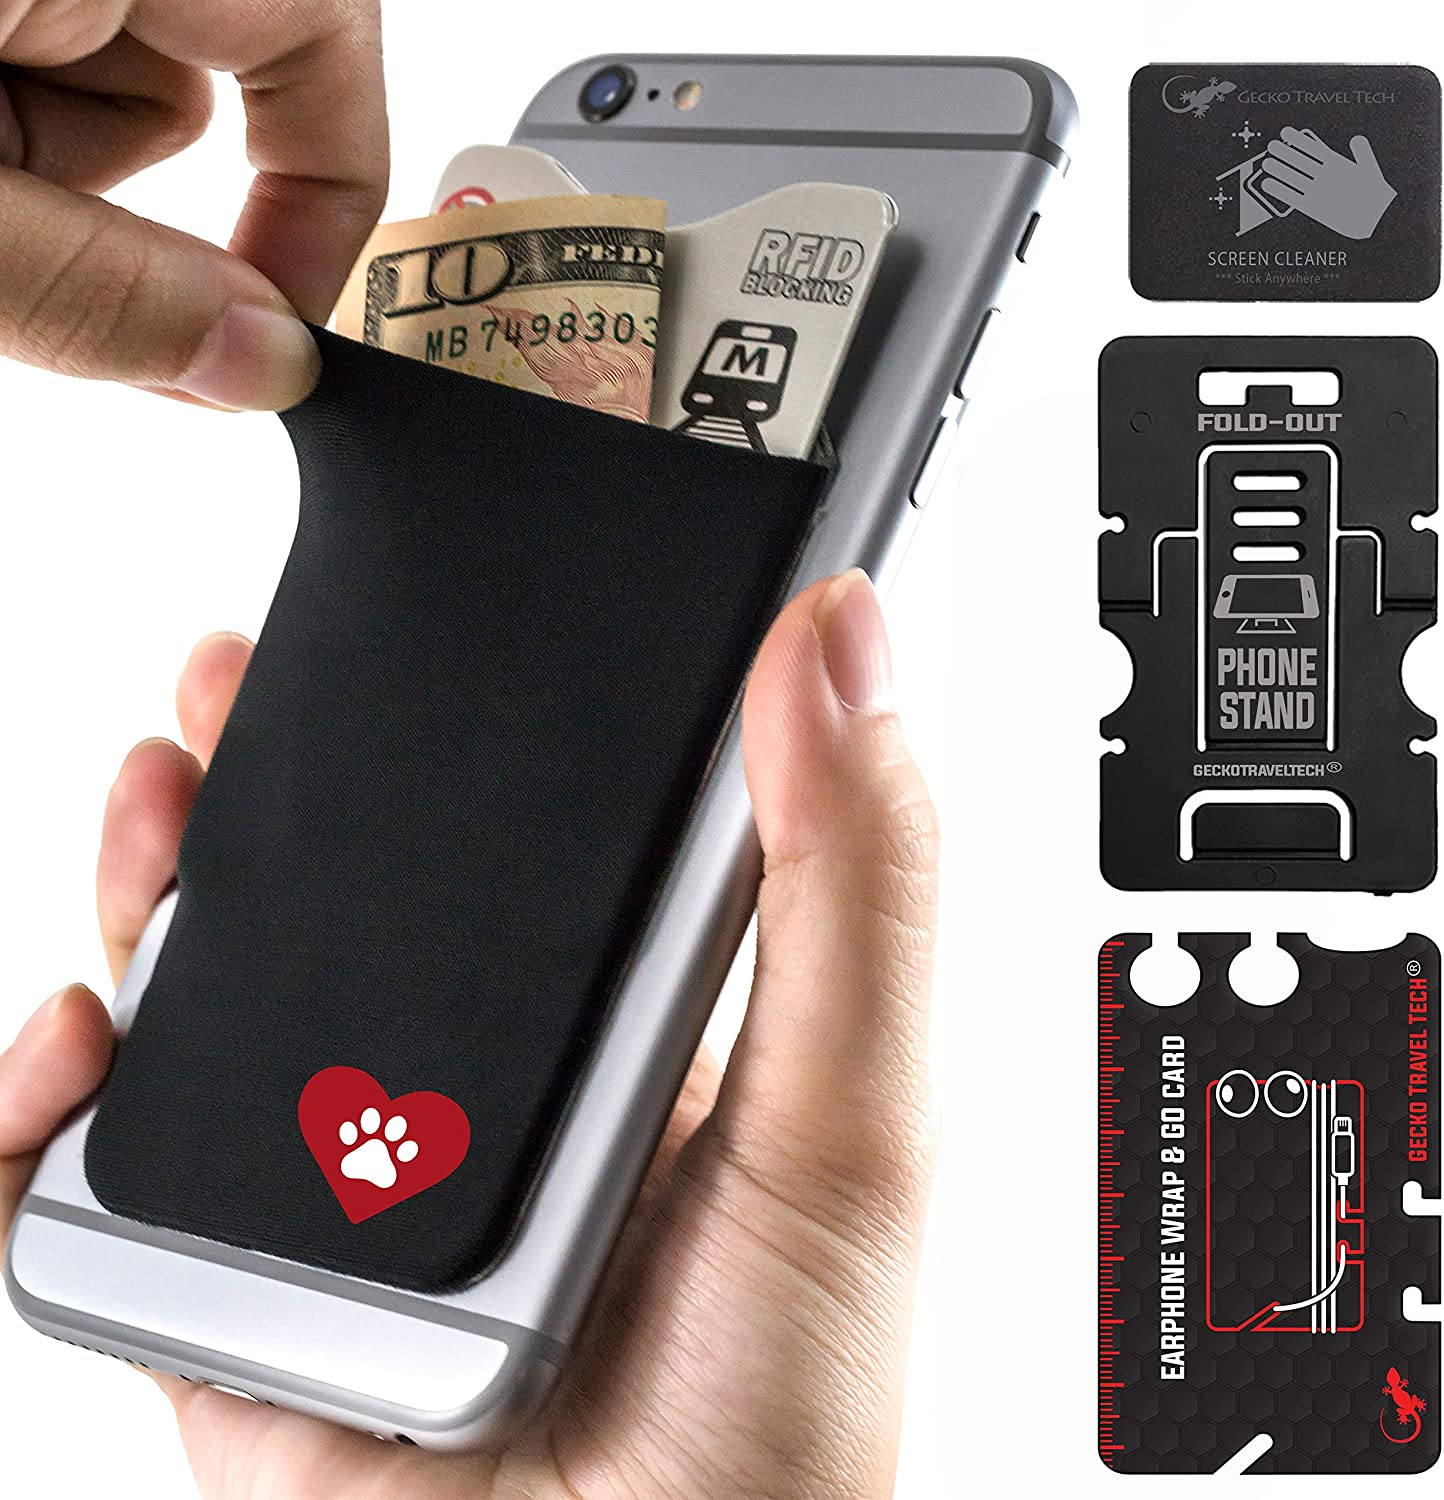 NATURE YY a Stick-On Stretchy Lycra Card holder Universally fits most Cell Phones /& Cases Gecko Adhesive Phone Wallet /& RFID Blocking Sleeve Xtra Tall Pocket Totally Covers Credit Cards /& Cash